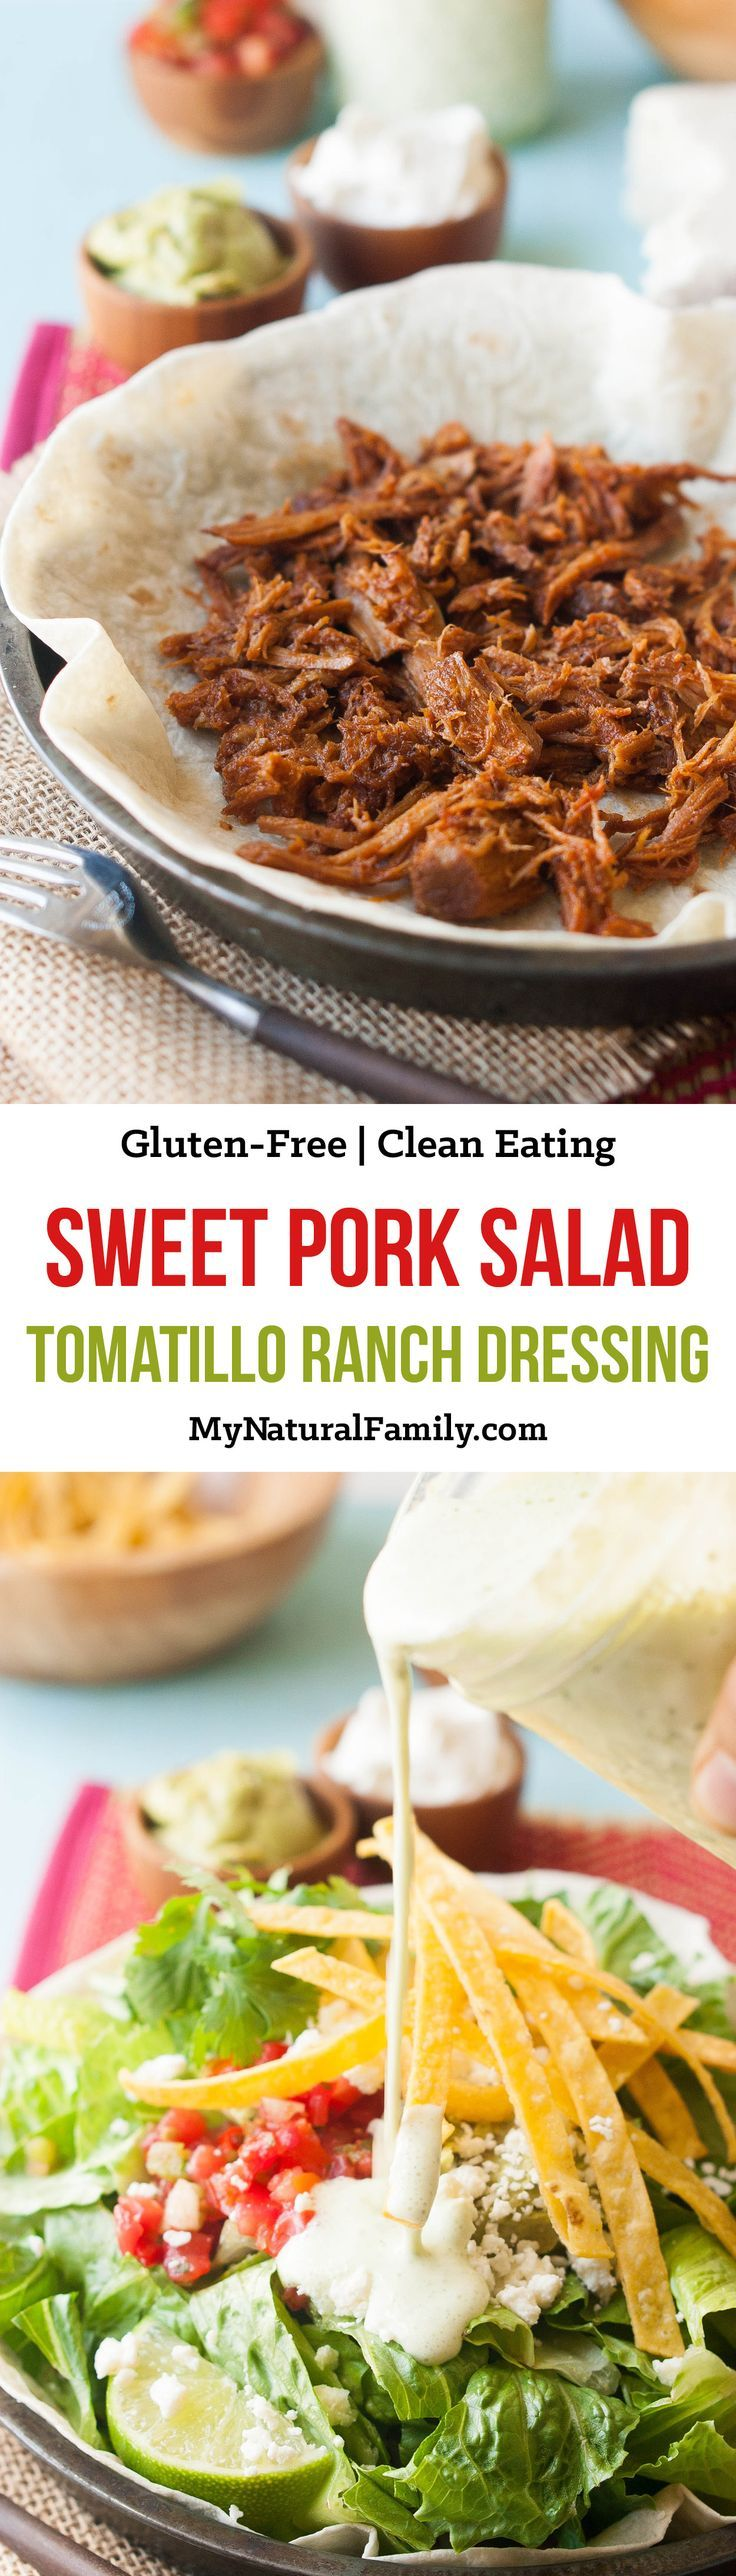 Homemade Creamy Tomatillo Ranch Dressing Recipe - no ranch packet.. Just good, healthy and simple ingredients. Make Cafe Rio at home. {Gluten-Free, Clean Eating}